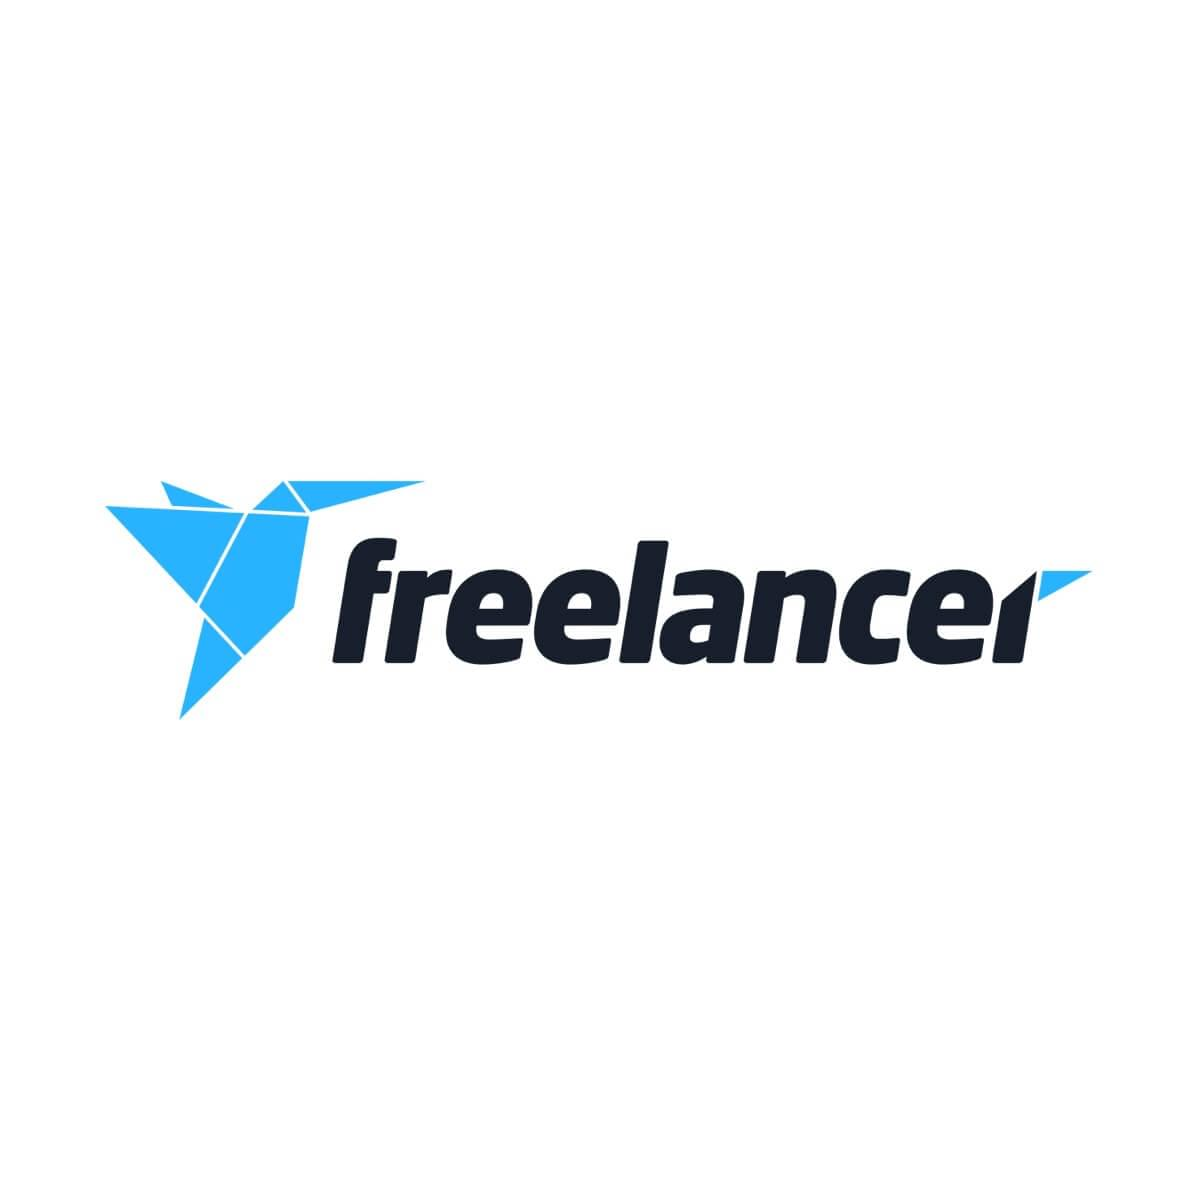 www.vn.freelancer.com